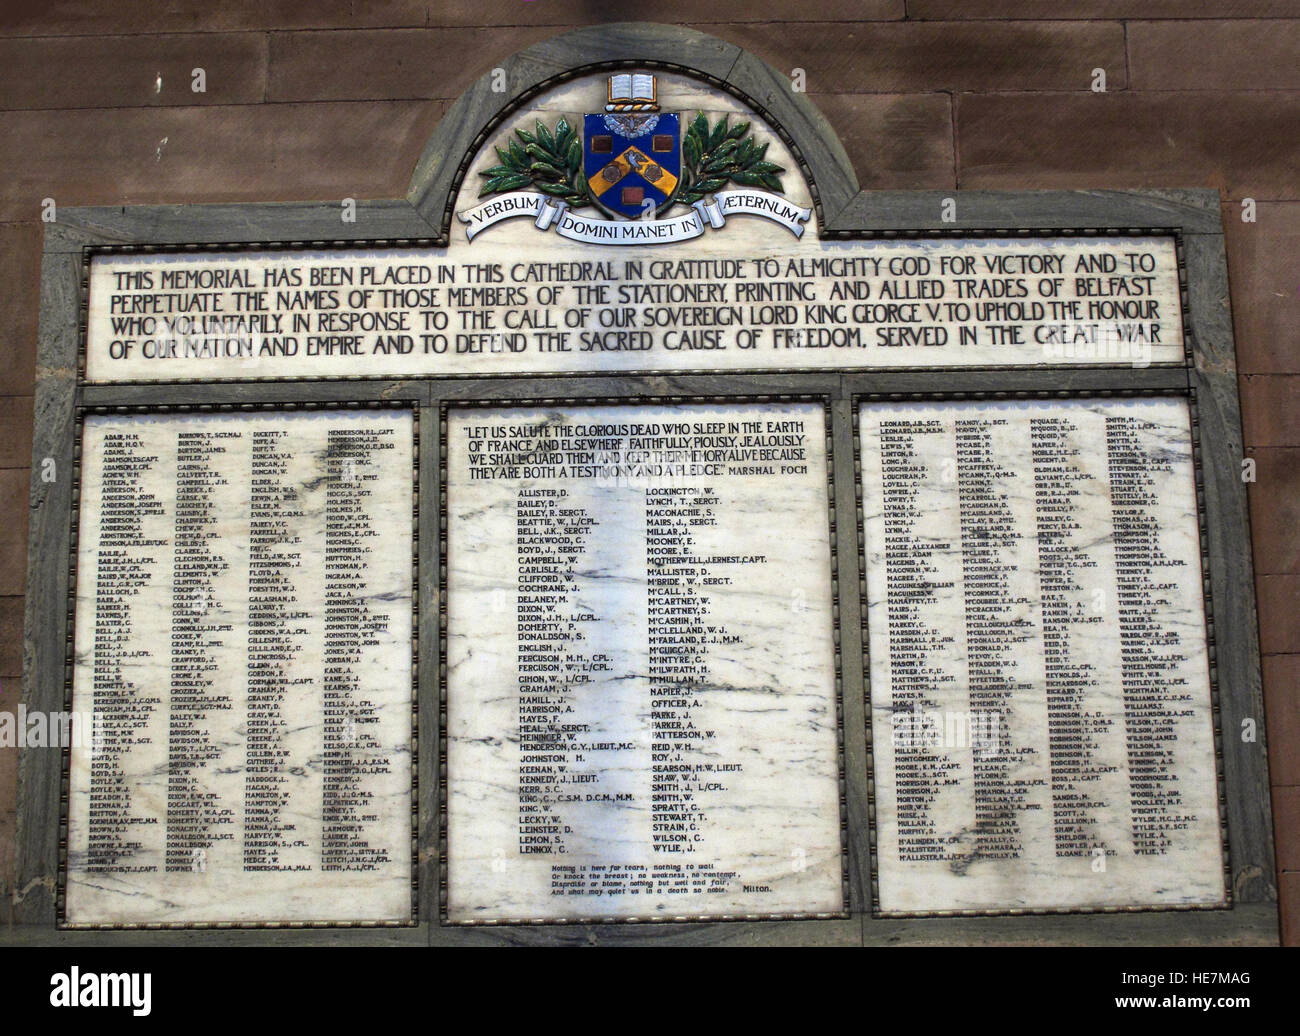 St Annes Belfast Cathedral Interior,Members of stationary,printing & allied trades who served in the great war - Stock Image